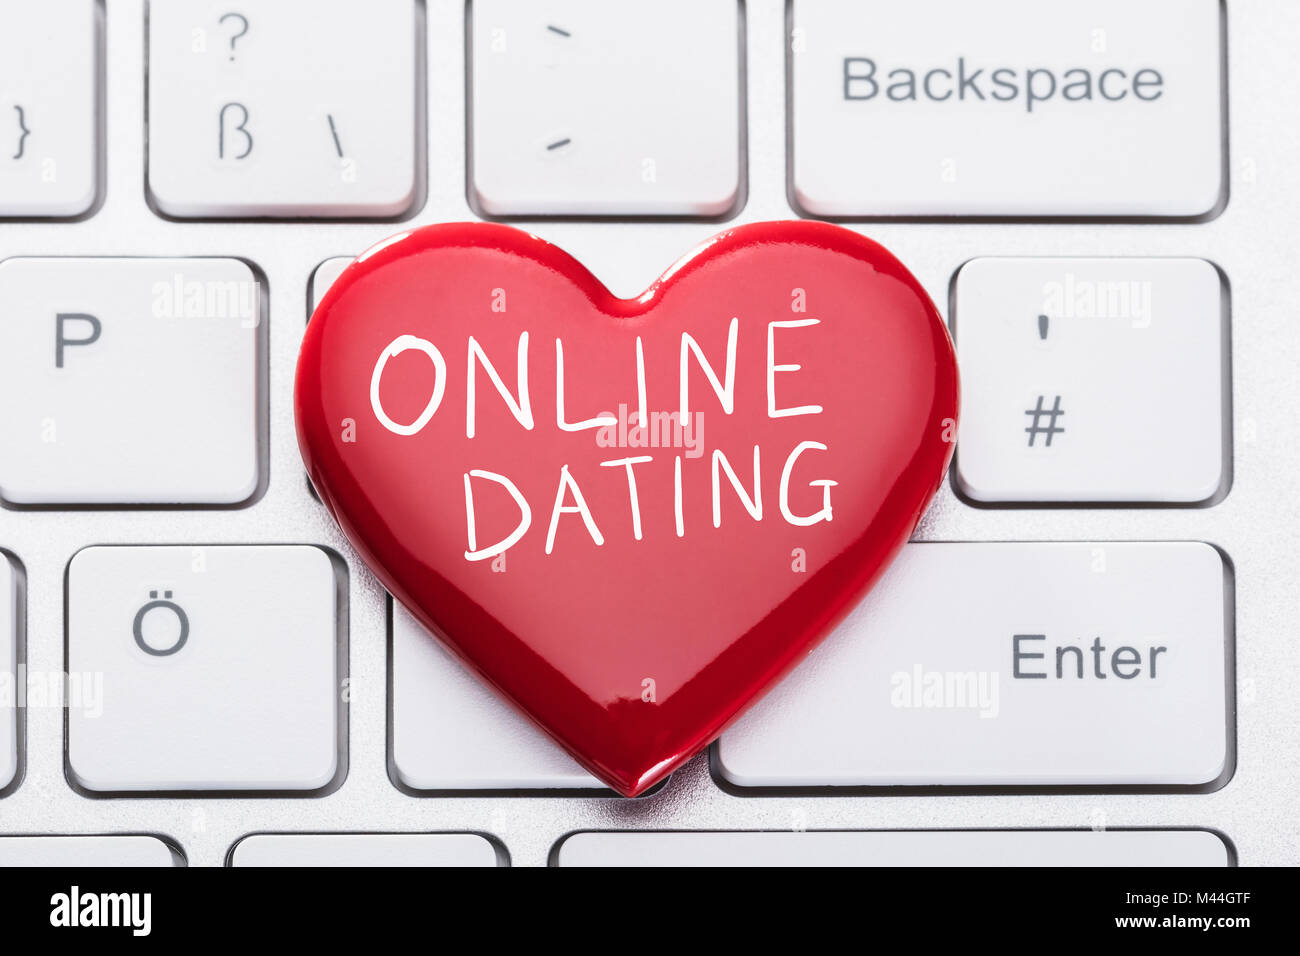 redlake online hookup & dating Meet redlake singles online & chat in the forums dhu is a 100% free dating site to find personals & casual encounters in redlake.